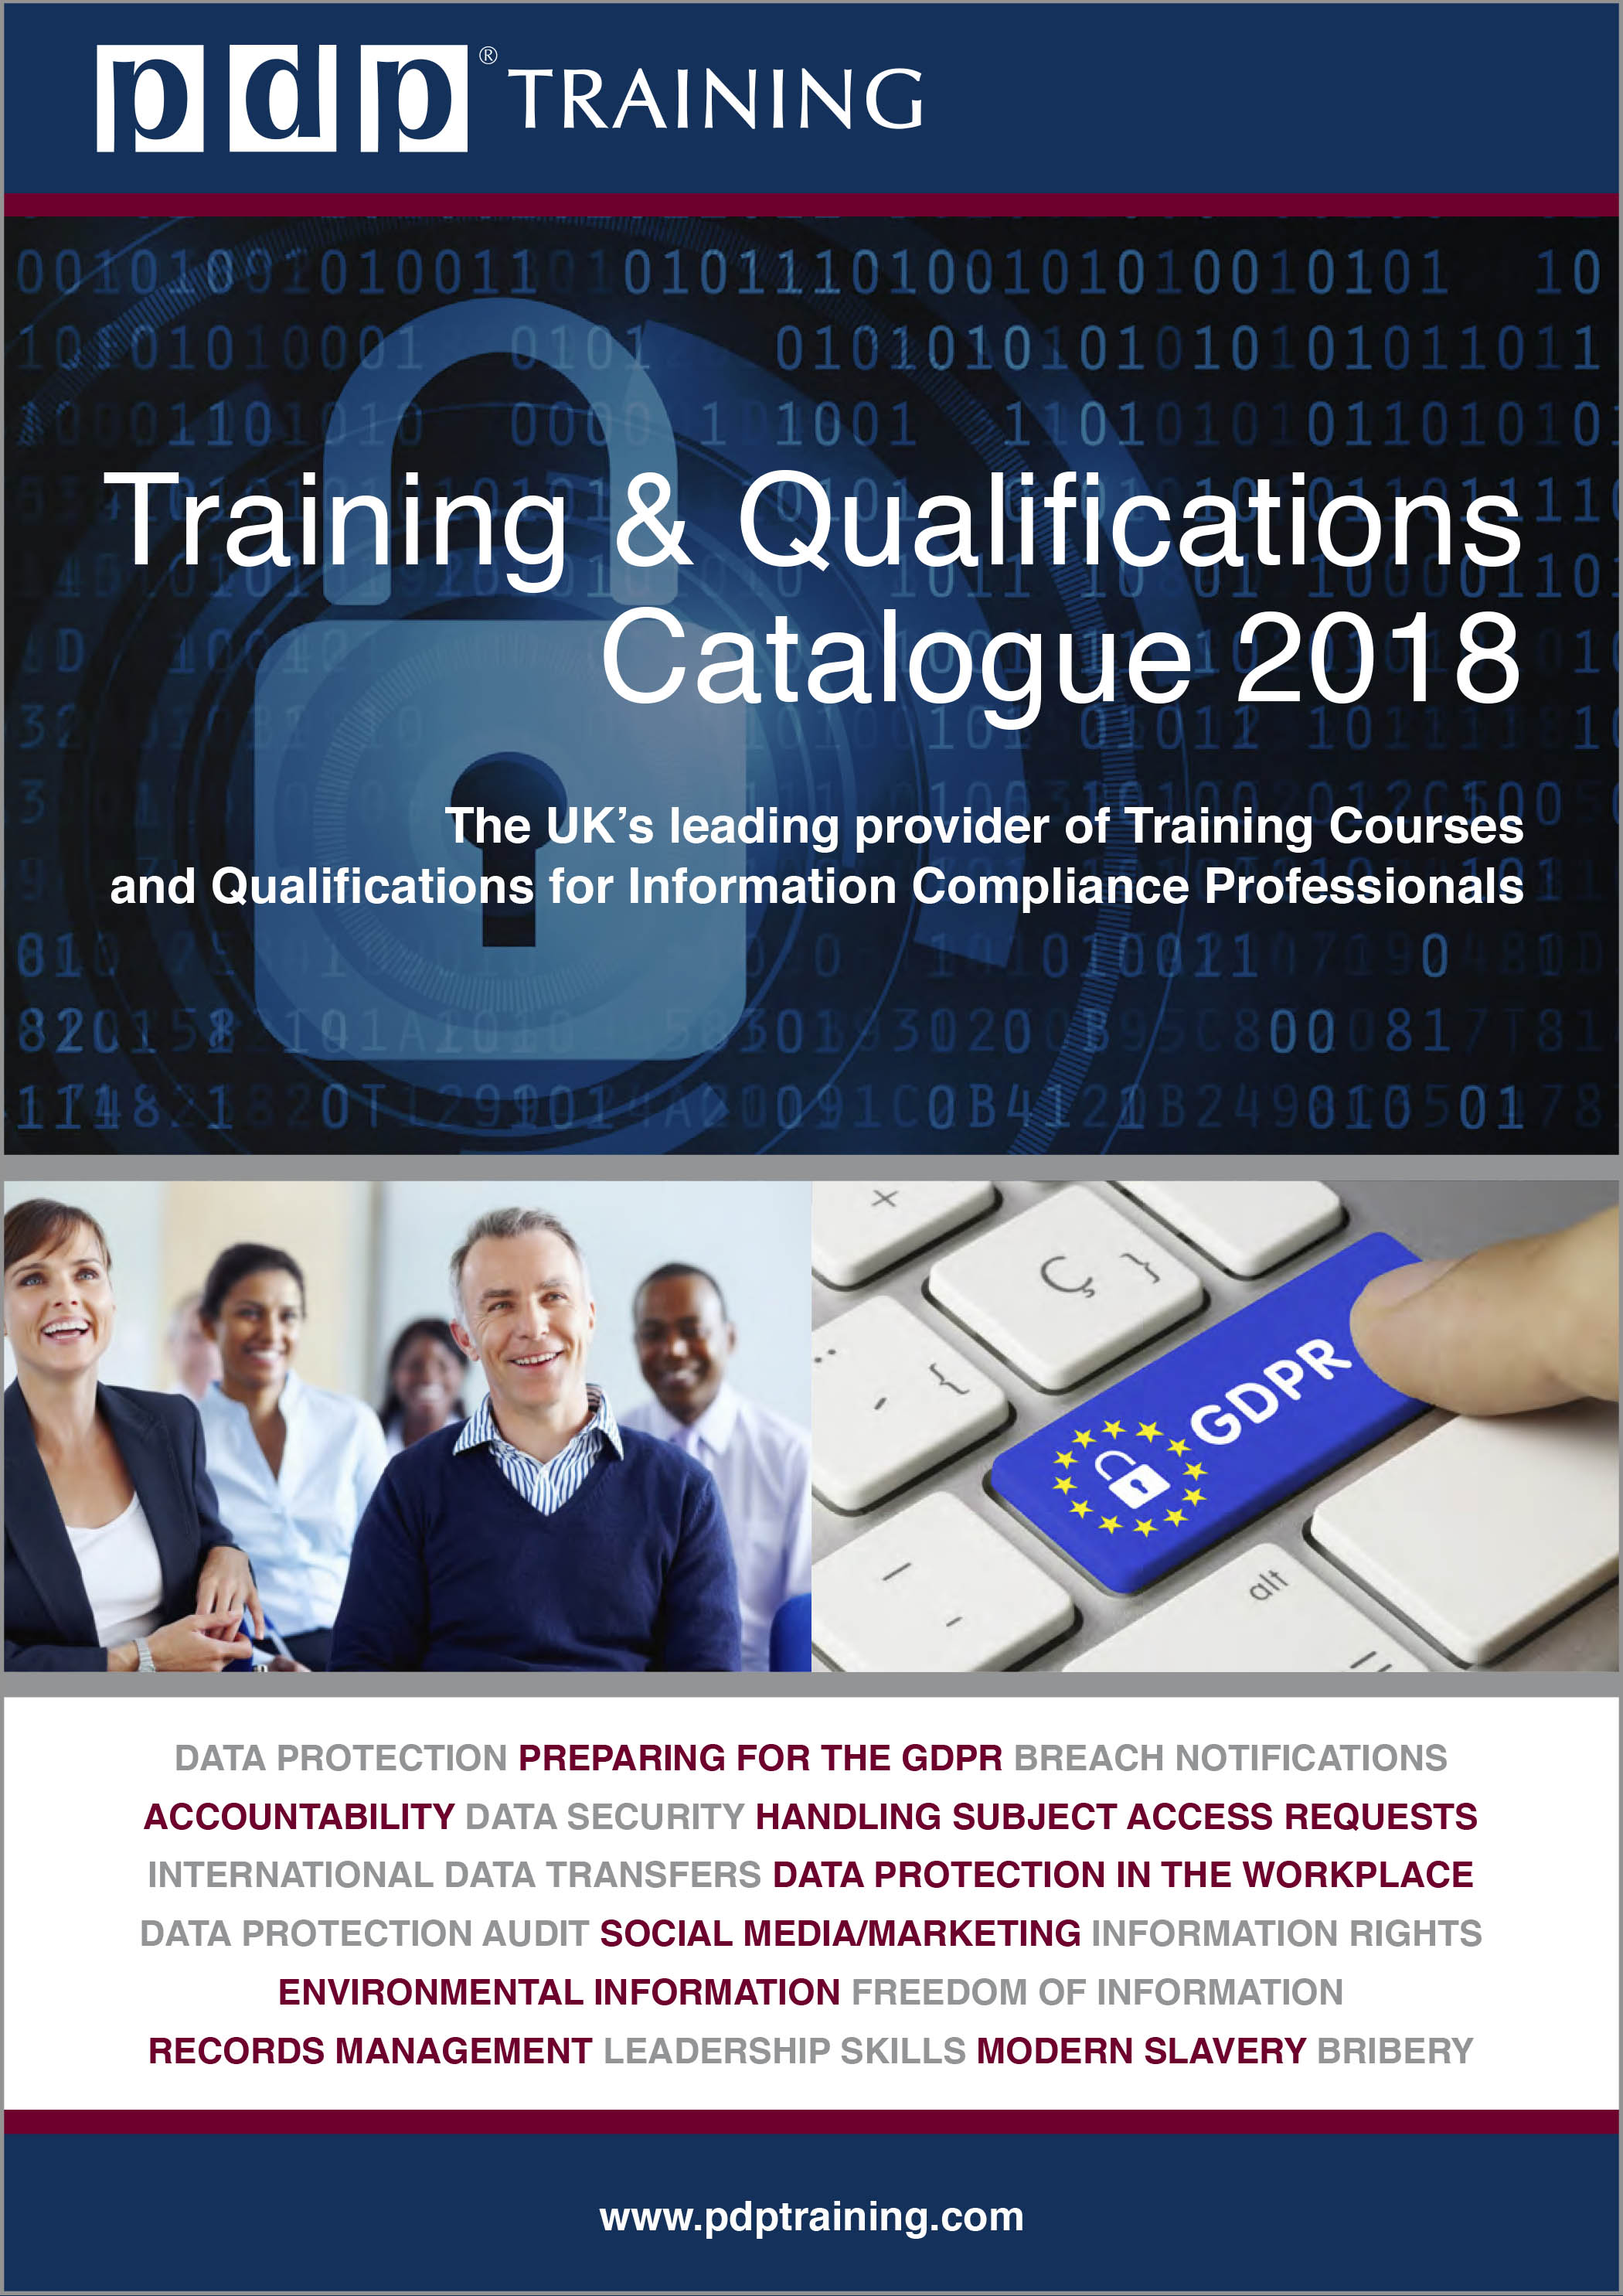 PDP Training & Qualifications Catalogue 2018